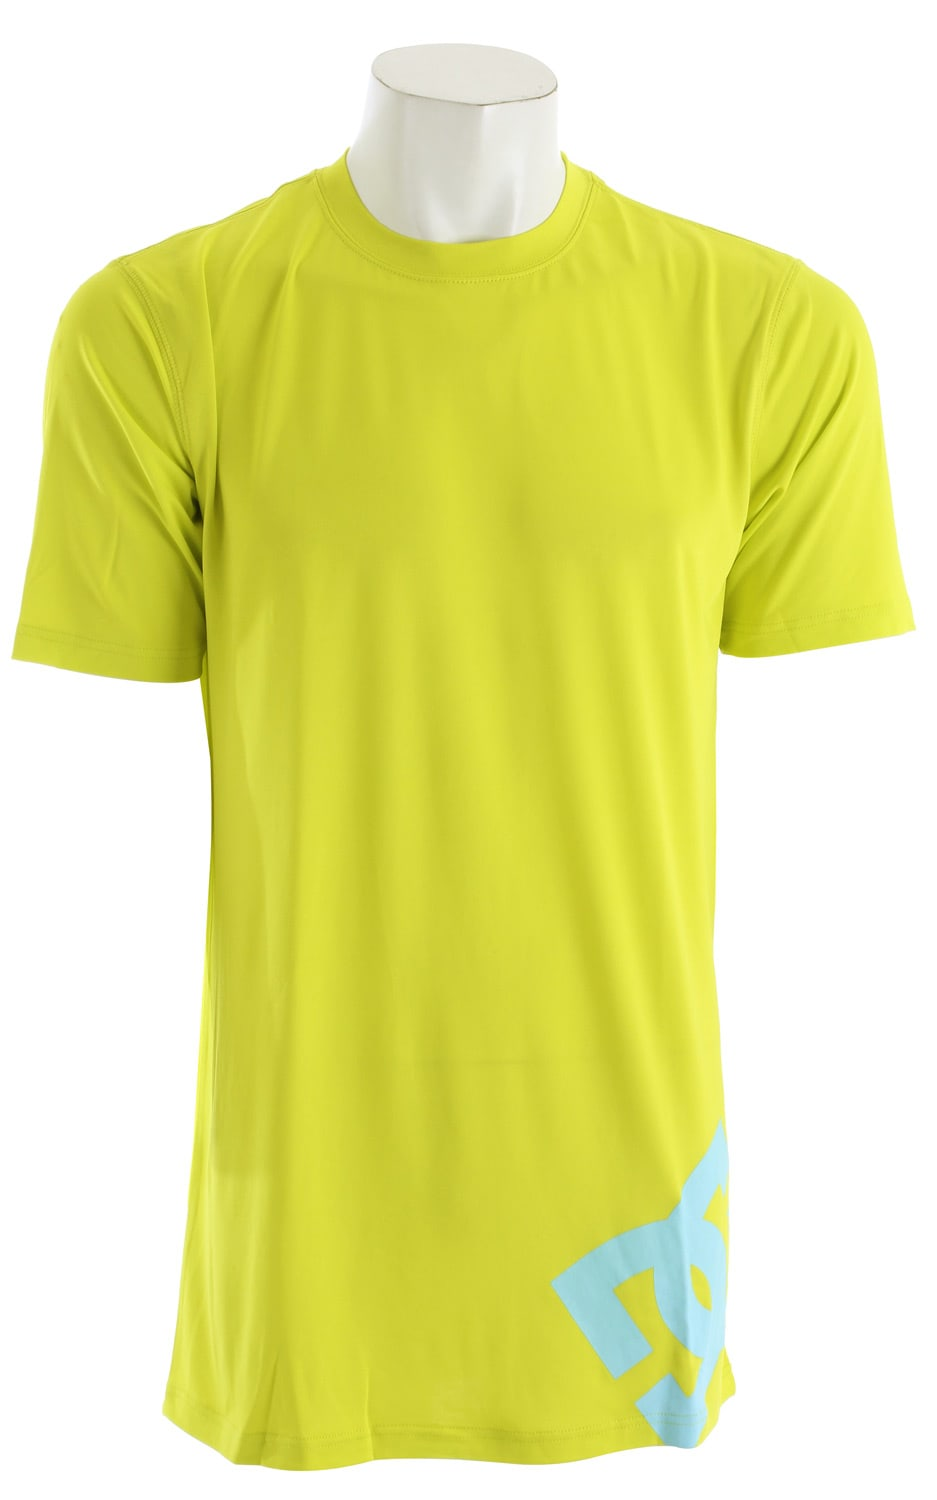 Shop for DC Aravis Baselayer Top Tennis - Men's